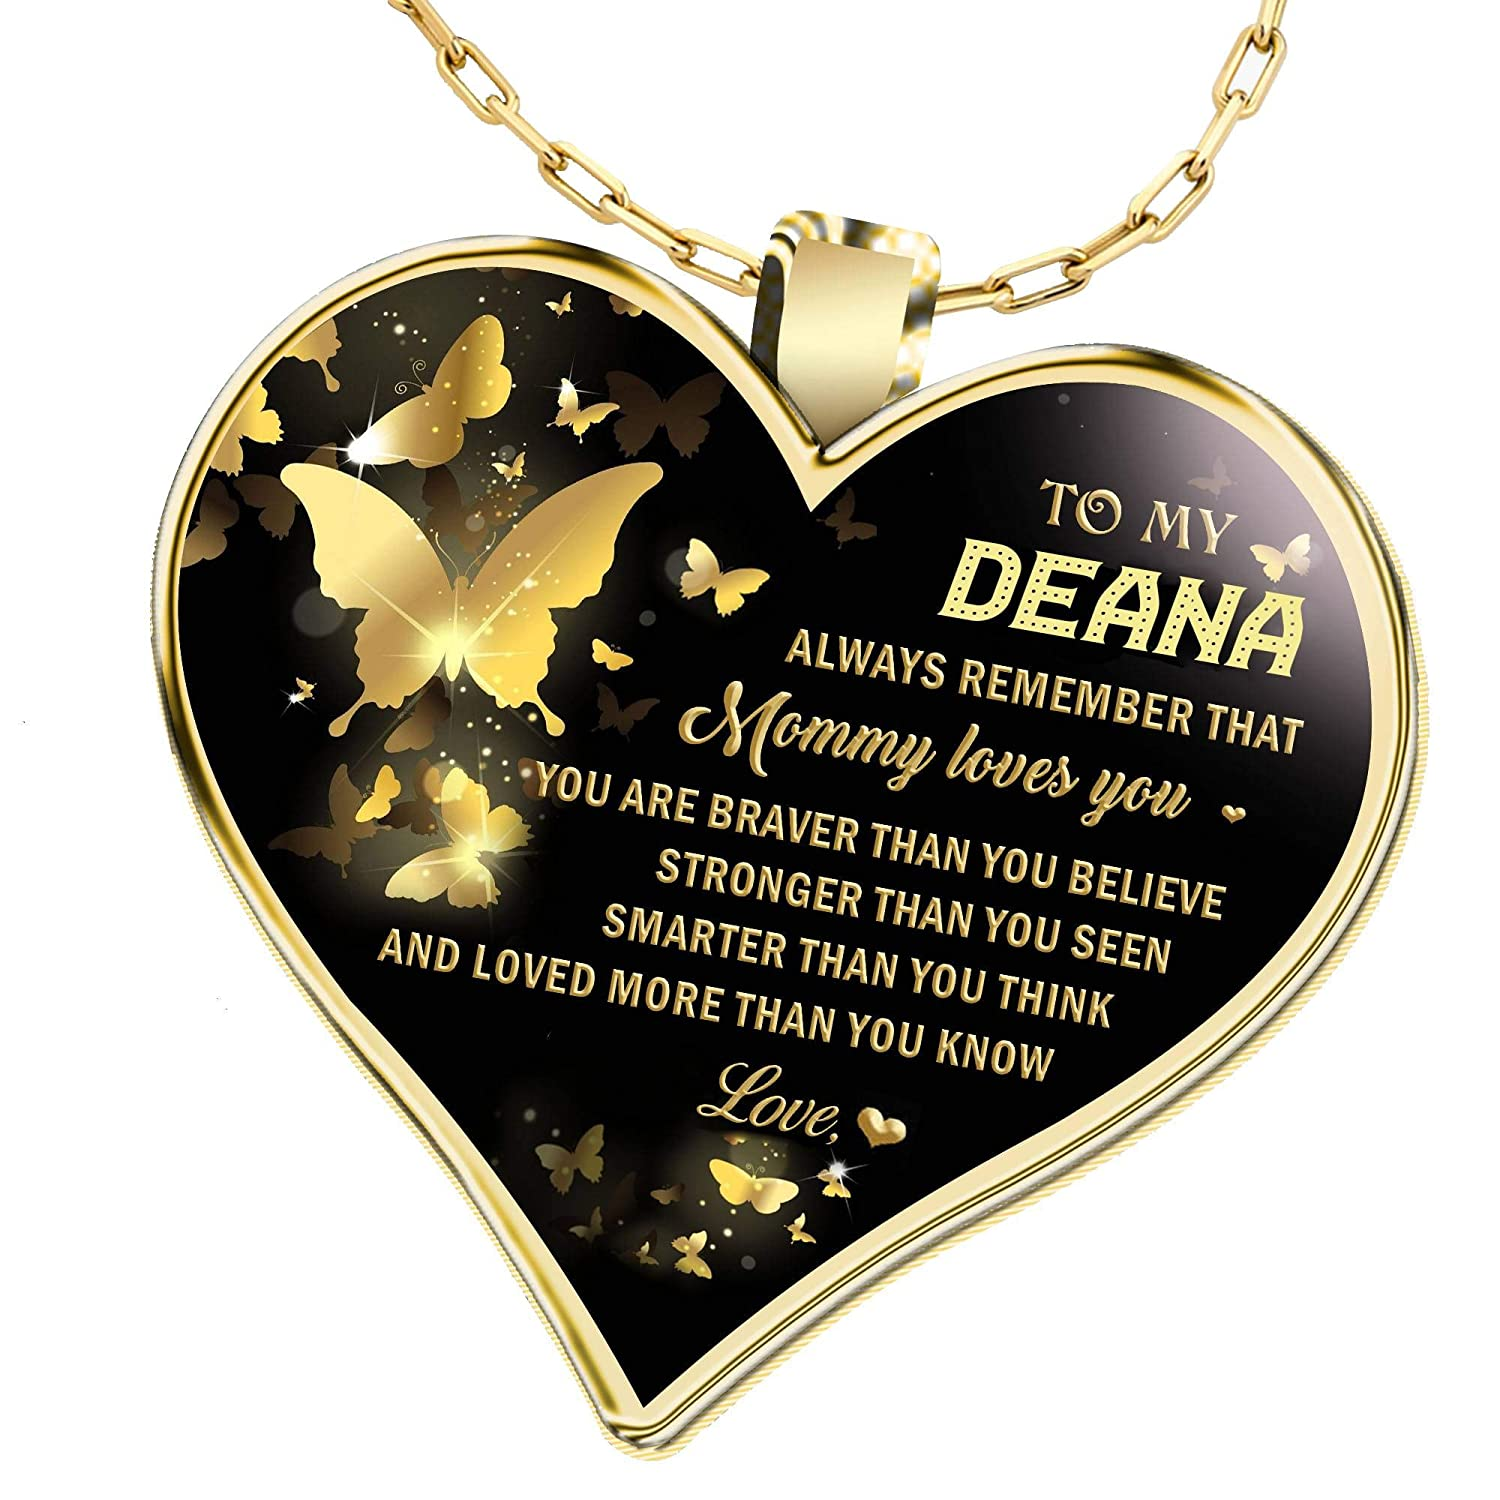 You are Braver Than You Believe for Mom Daughter Jewelry 18K Gold Plated Gifts Necklace Name for Wife to My Deana Always Remember That Mommy Love You